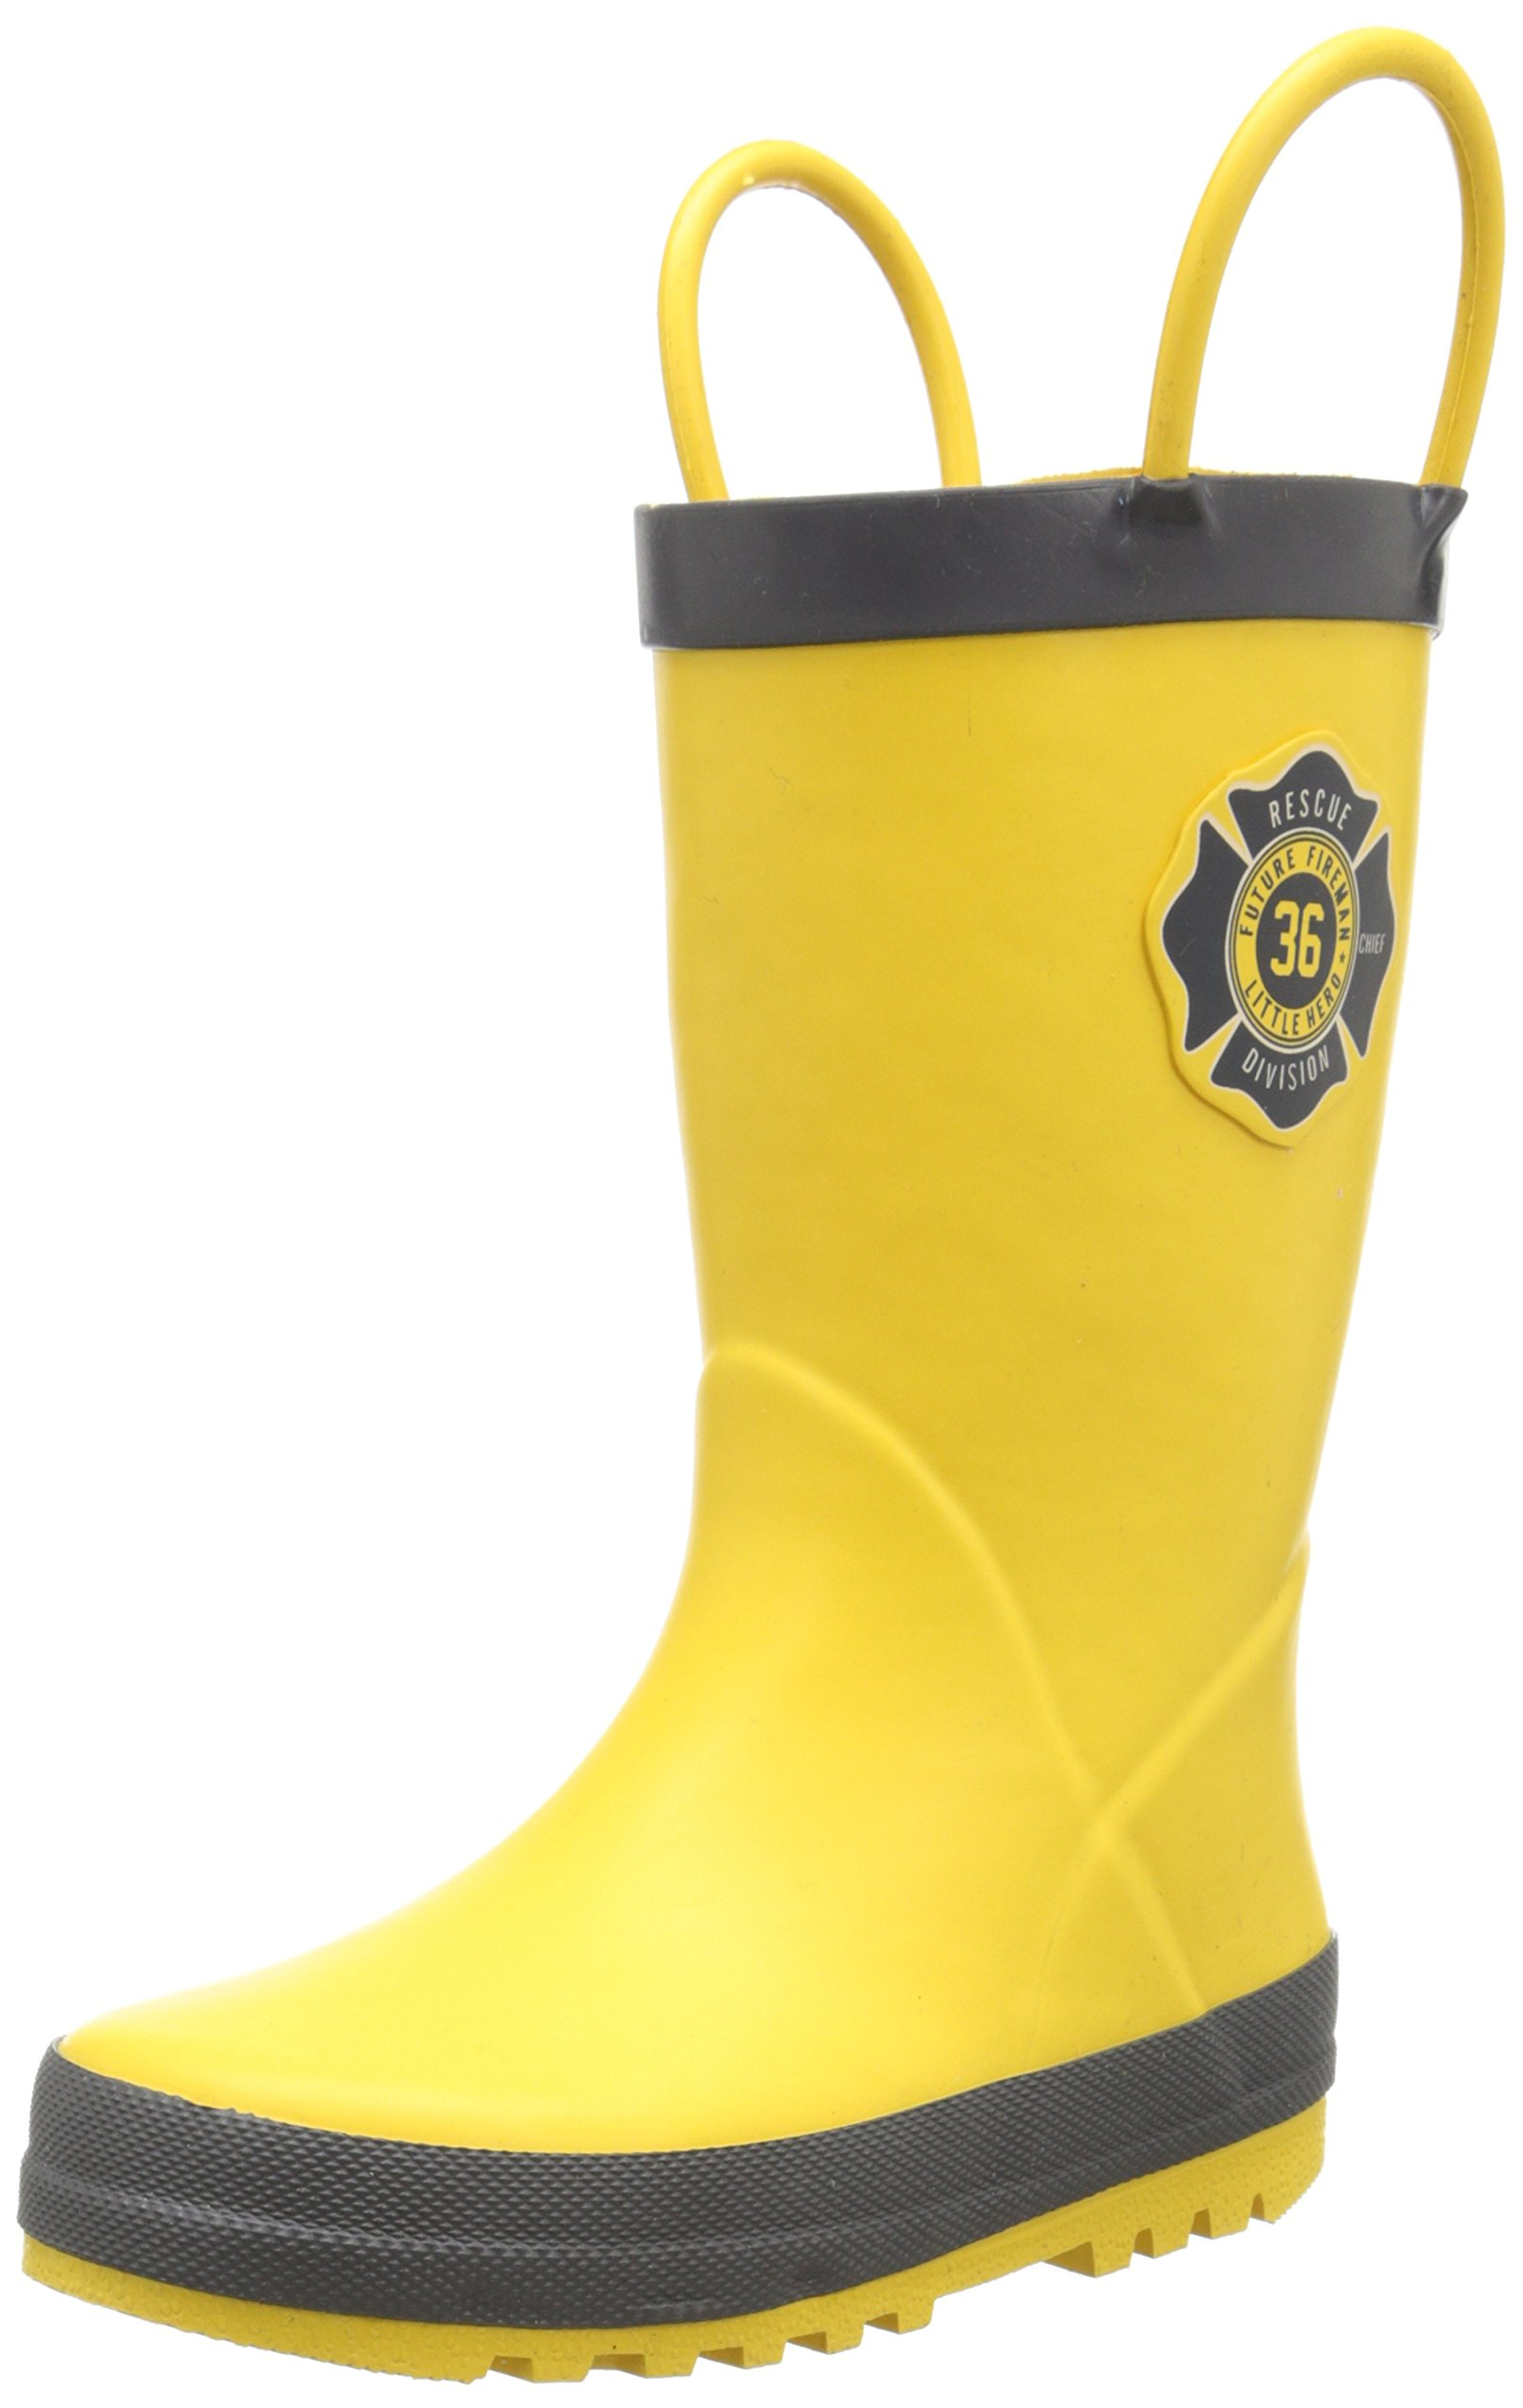 carter's Fireman Rain Boot (Toddler)